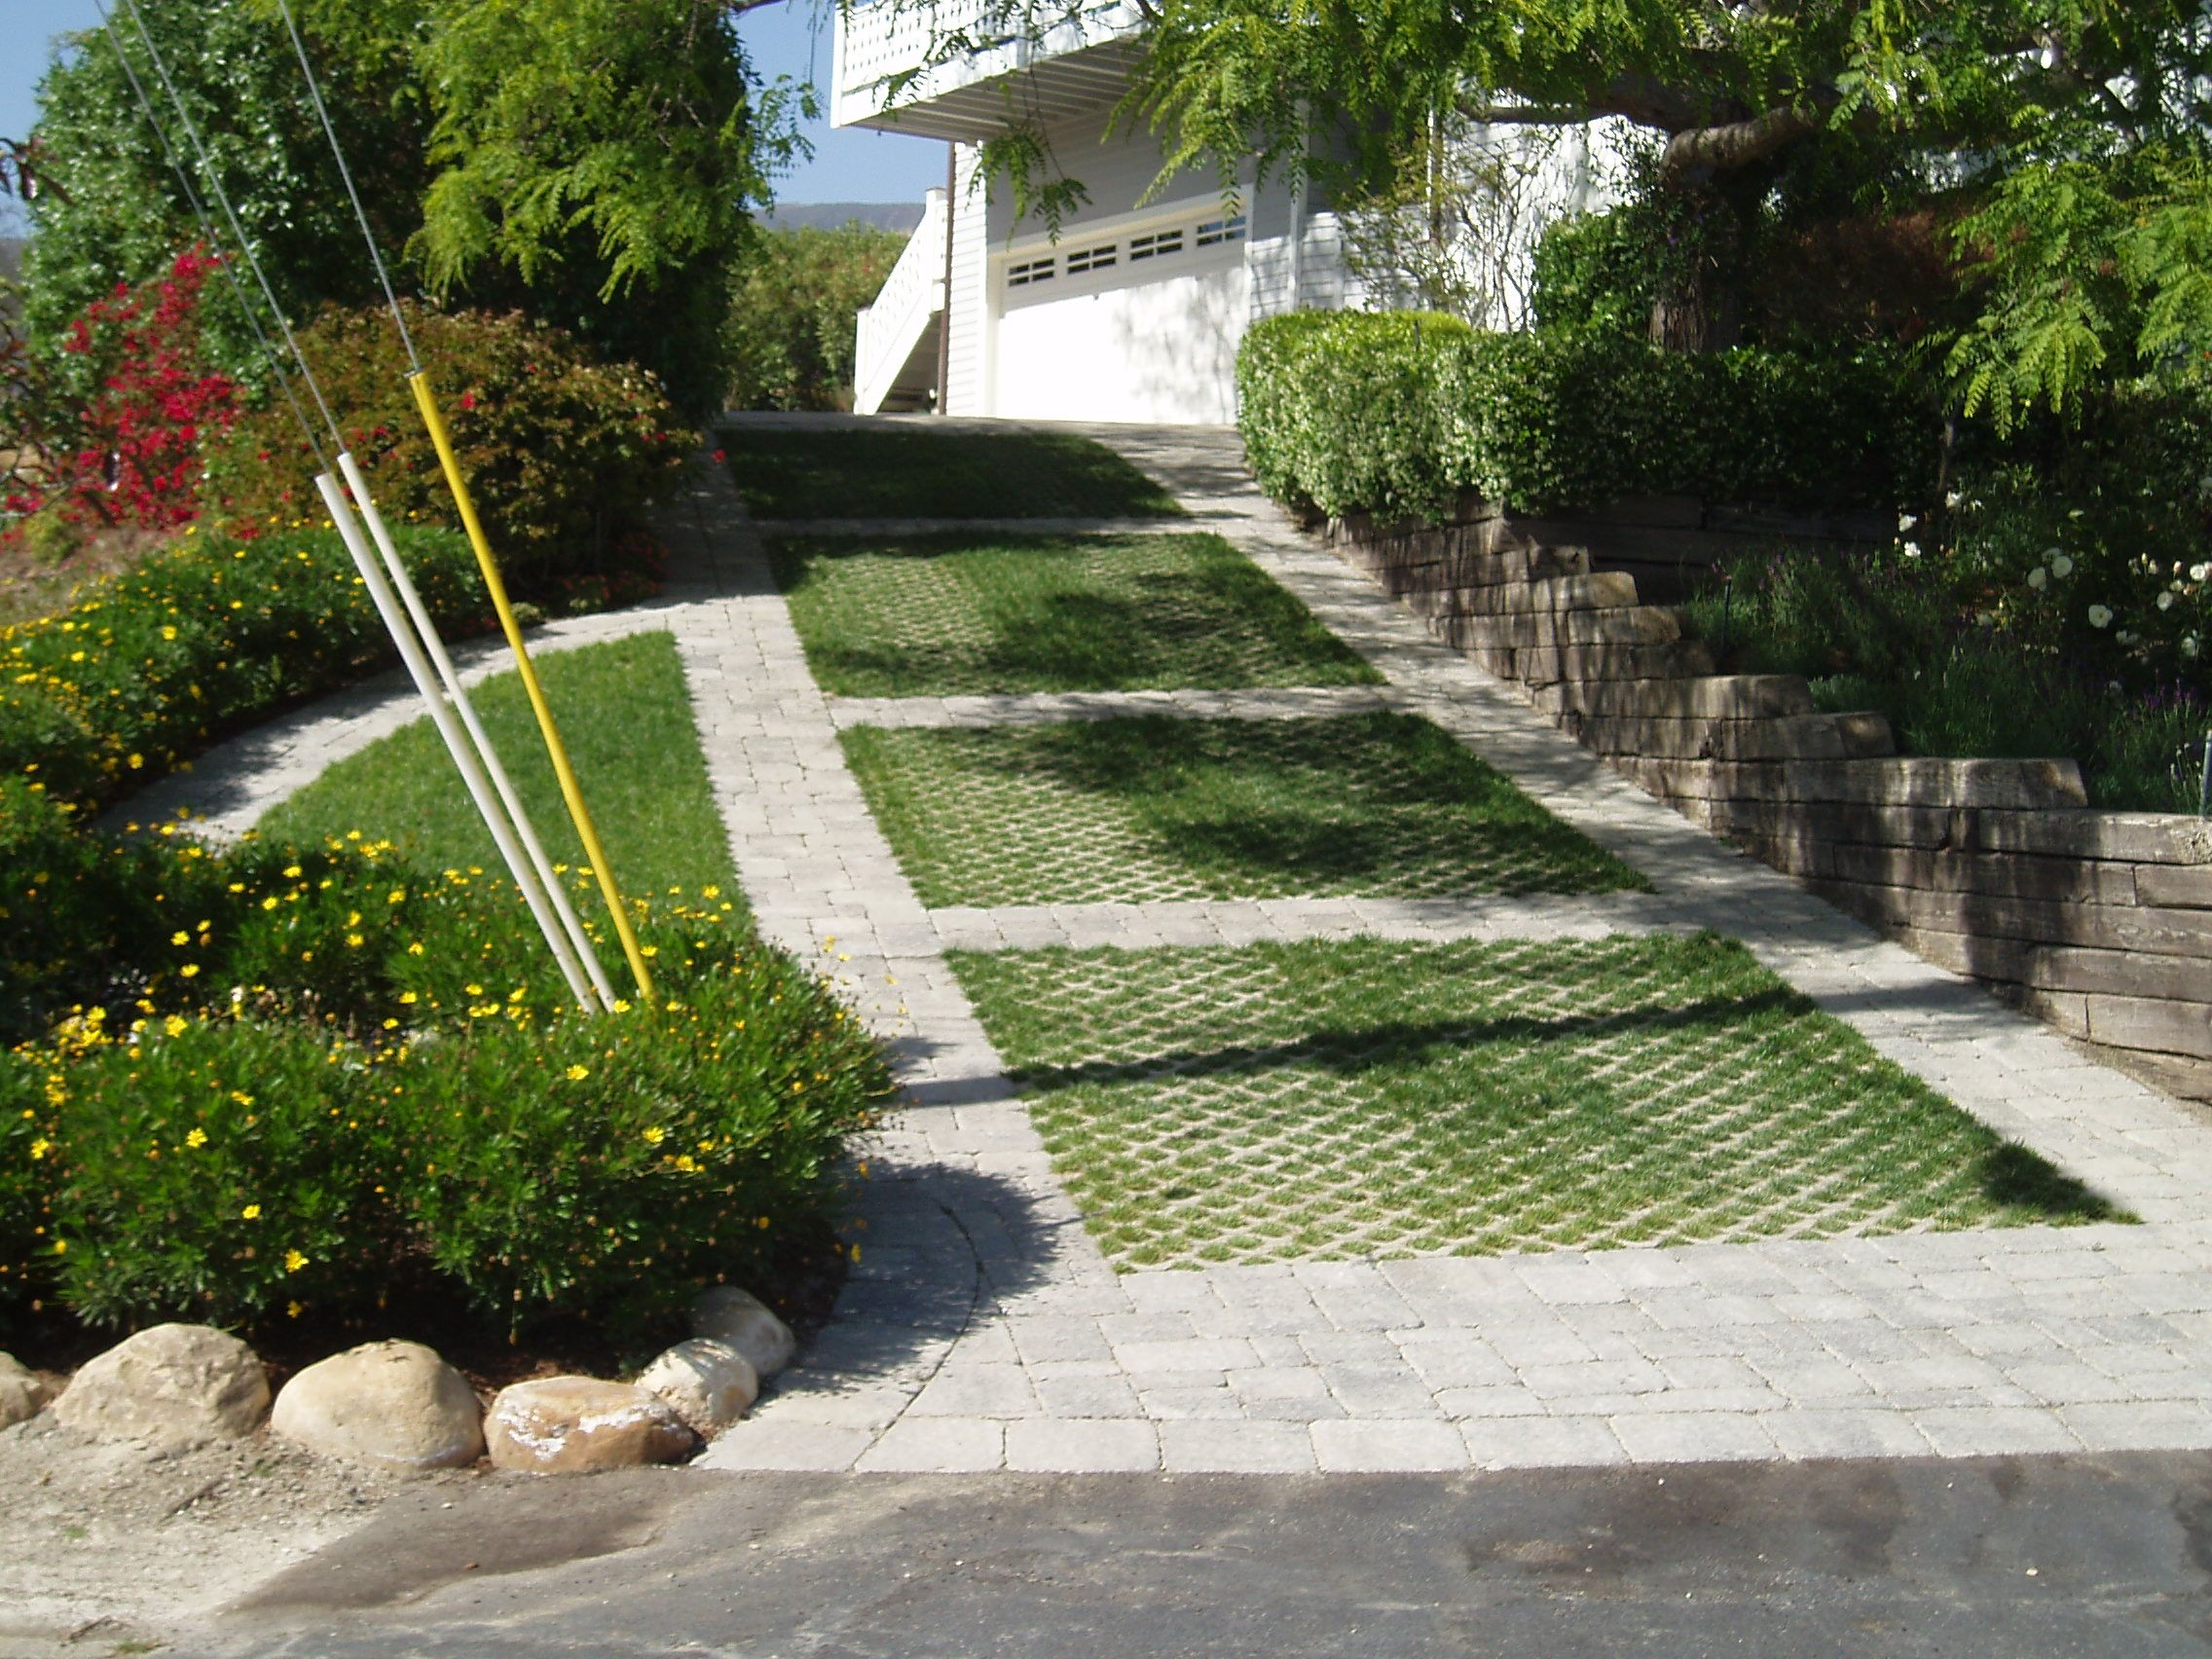 Pervious Driveway Pavers   Eco Option And Looks Better Than All Pavers.